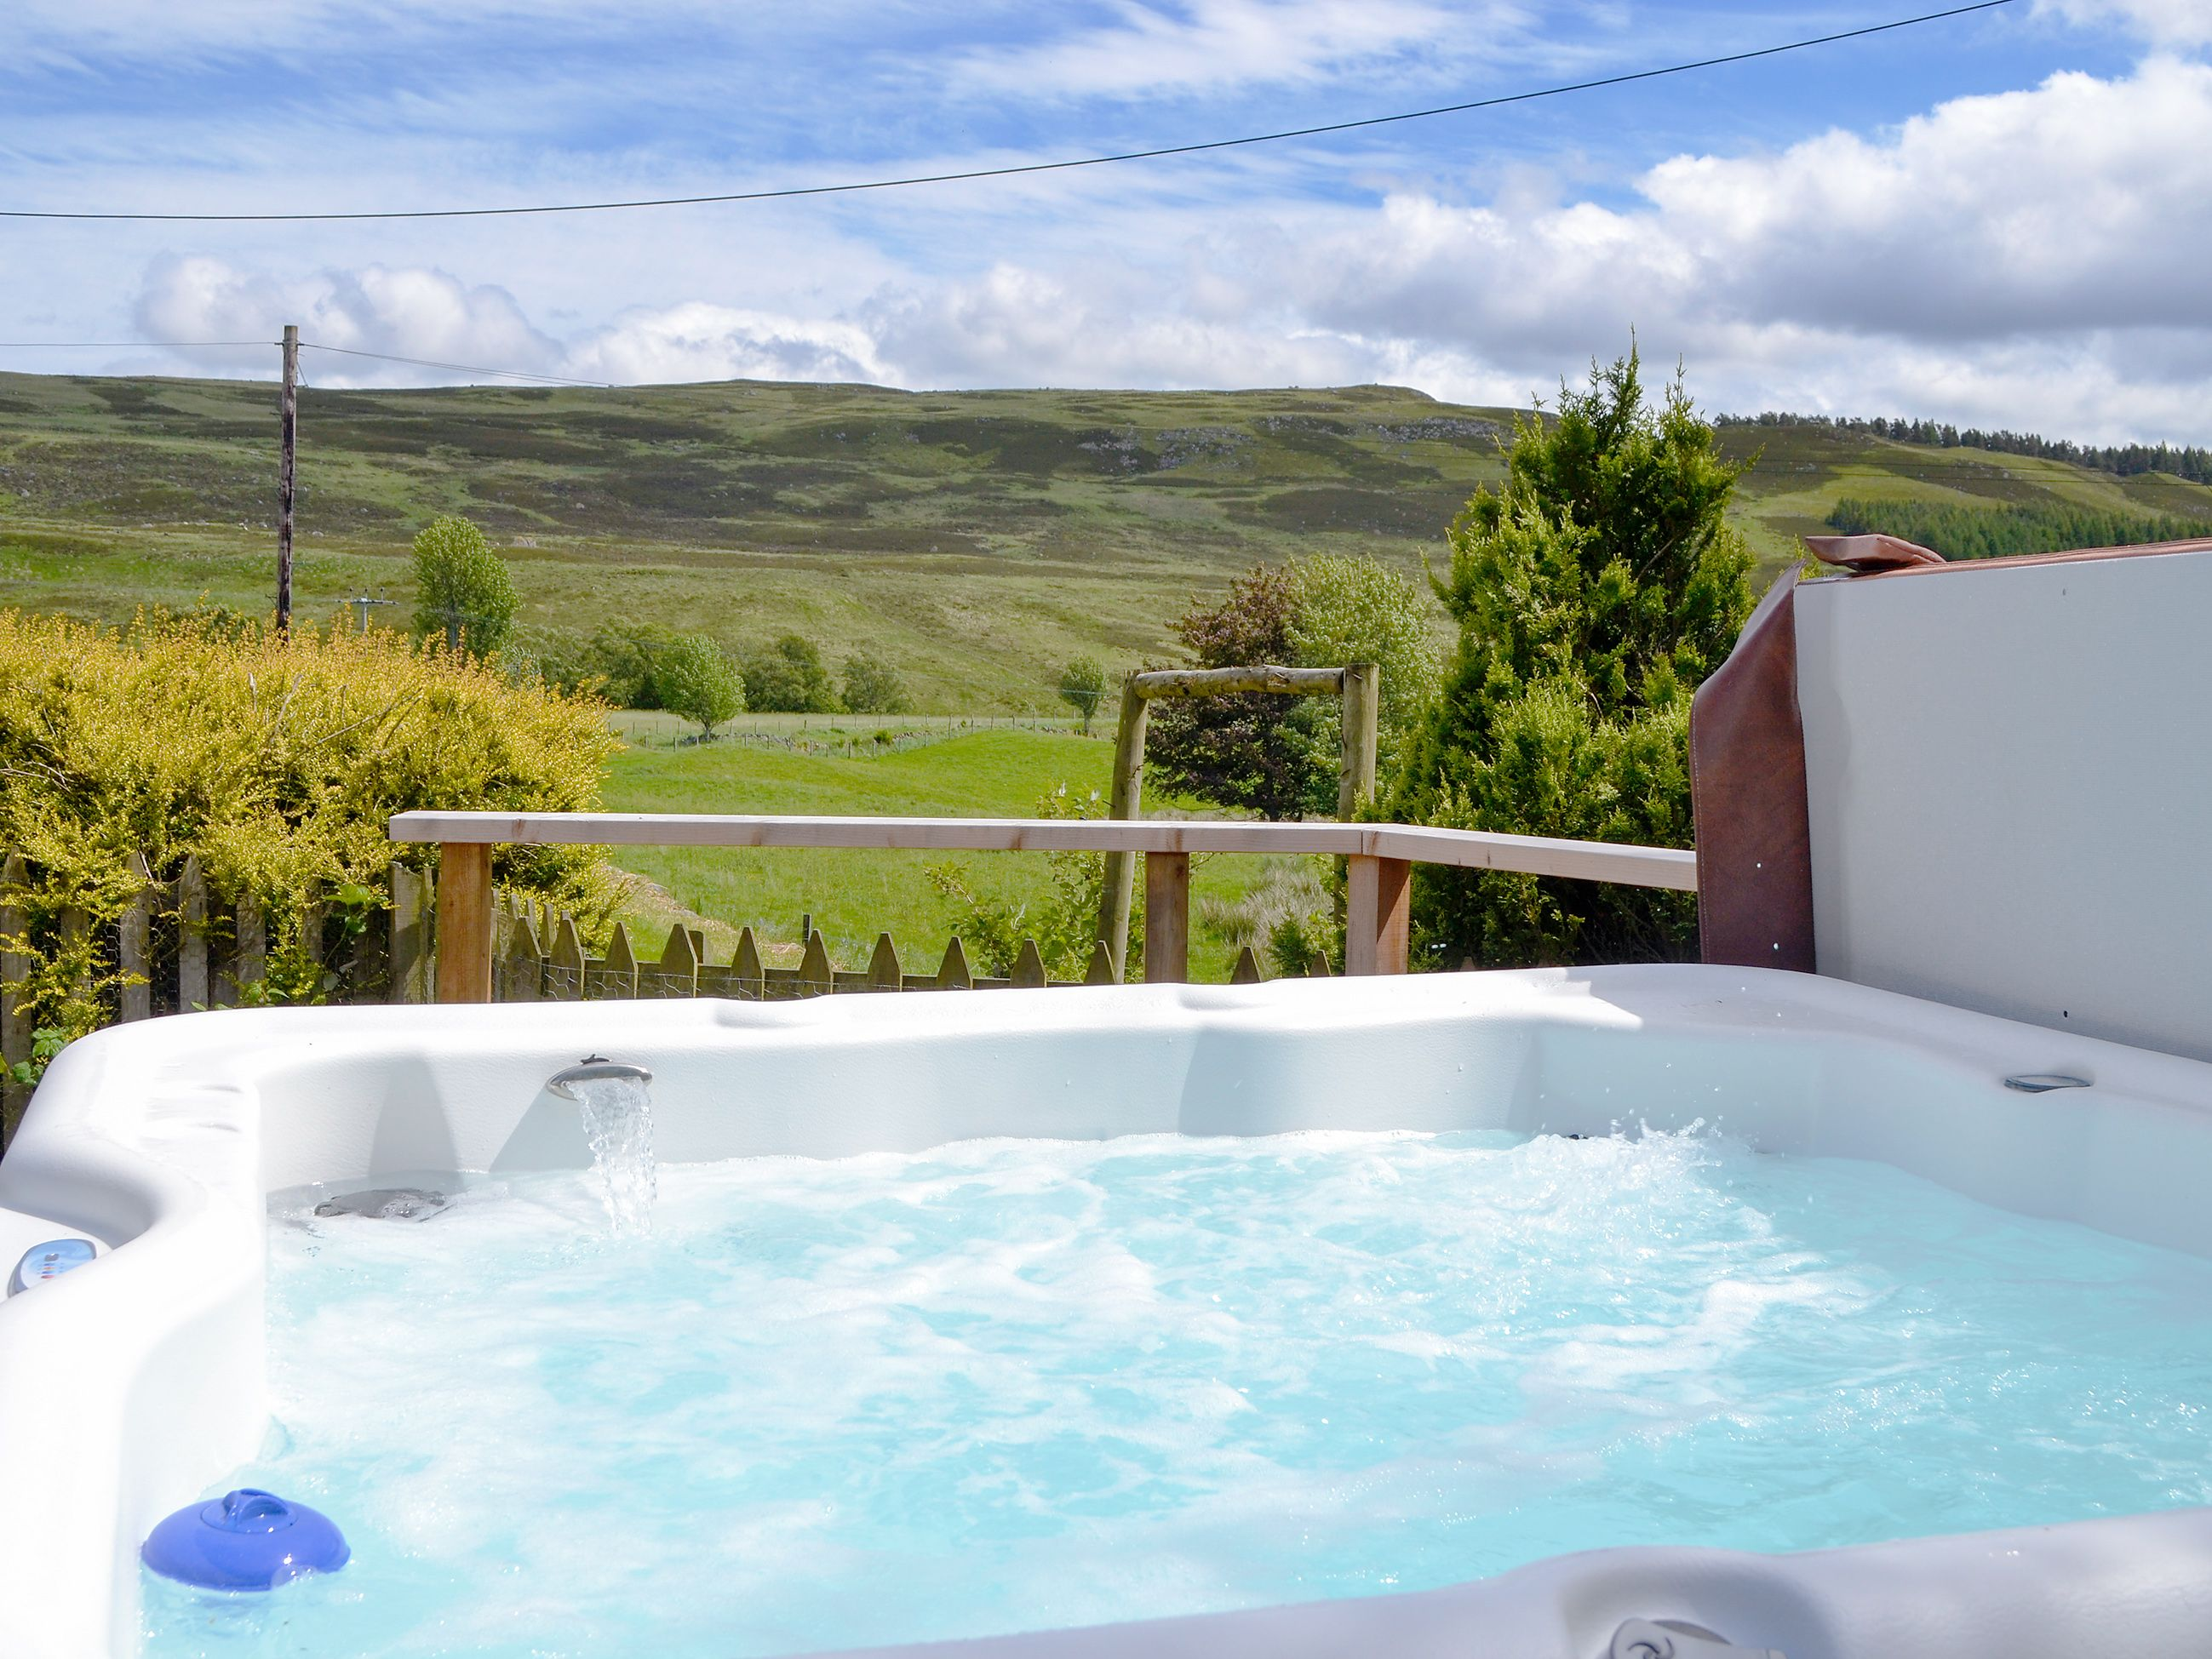 Soak in the gloriously beautiful landscape from the private hot tub ...